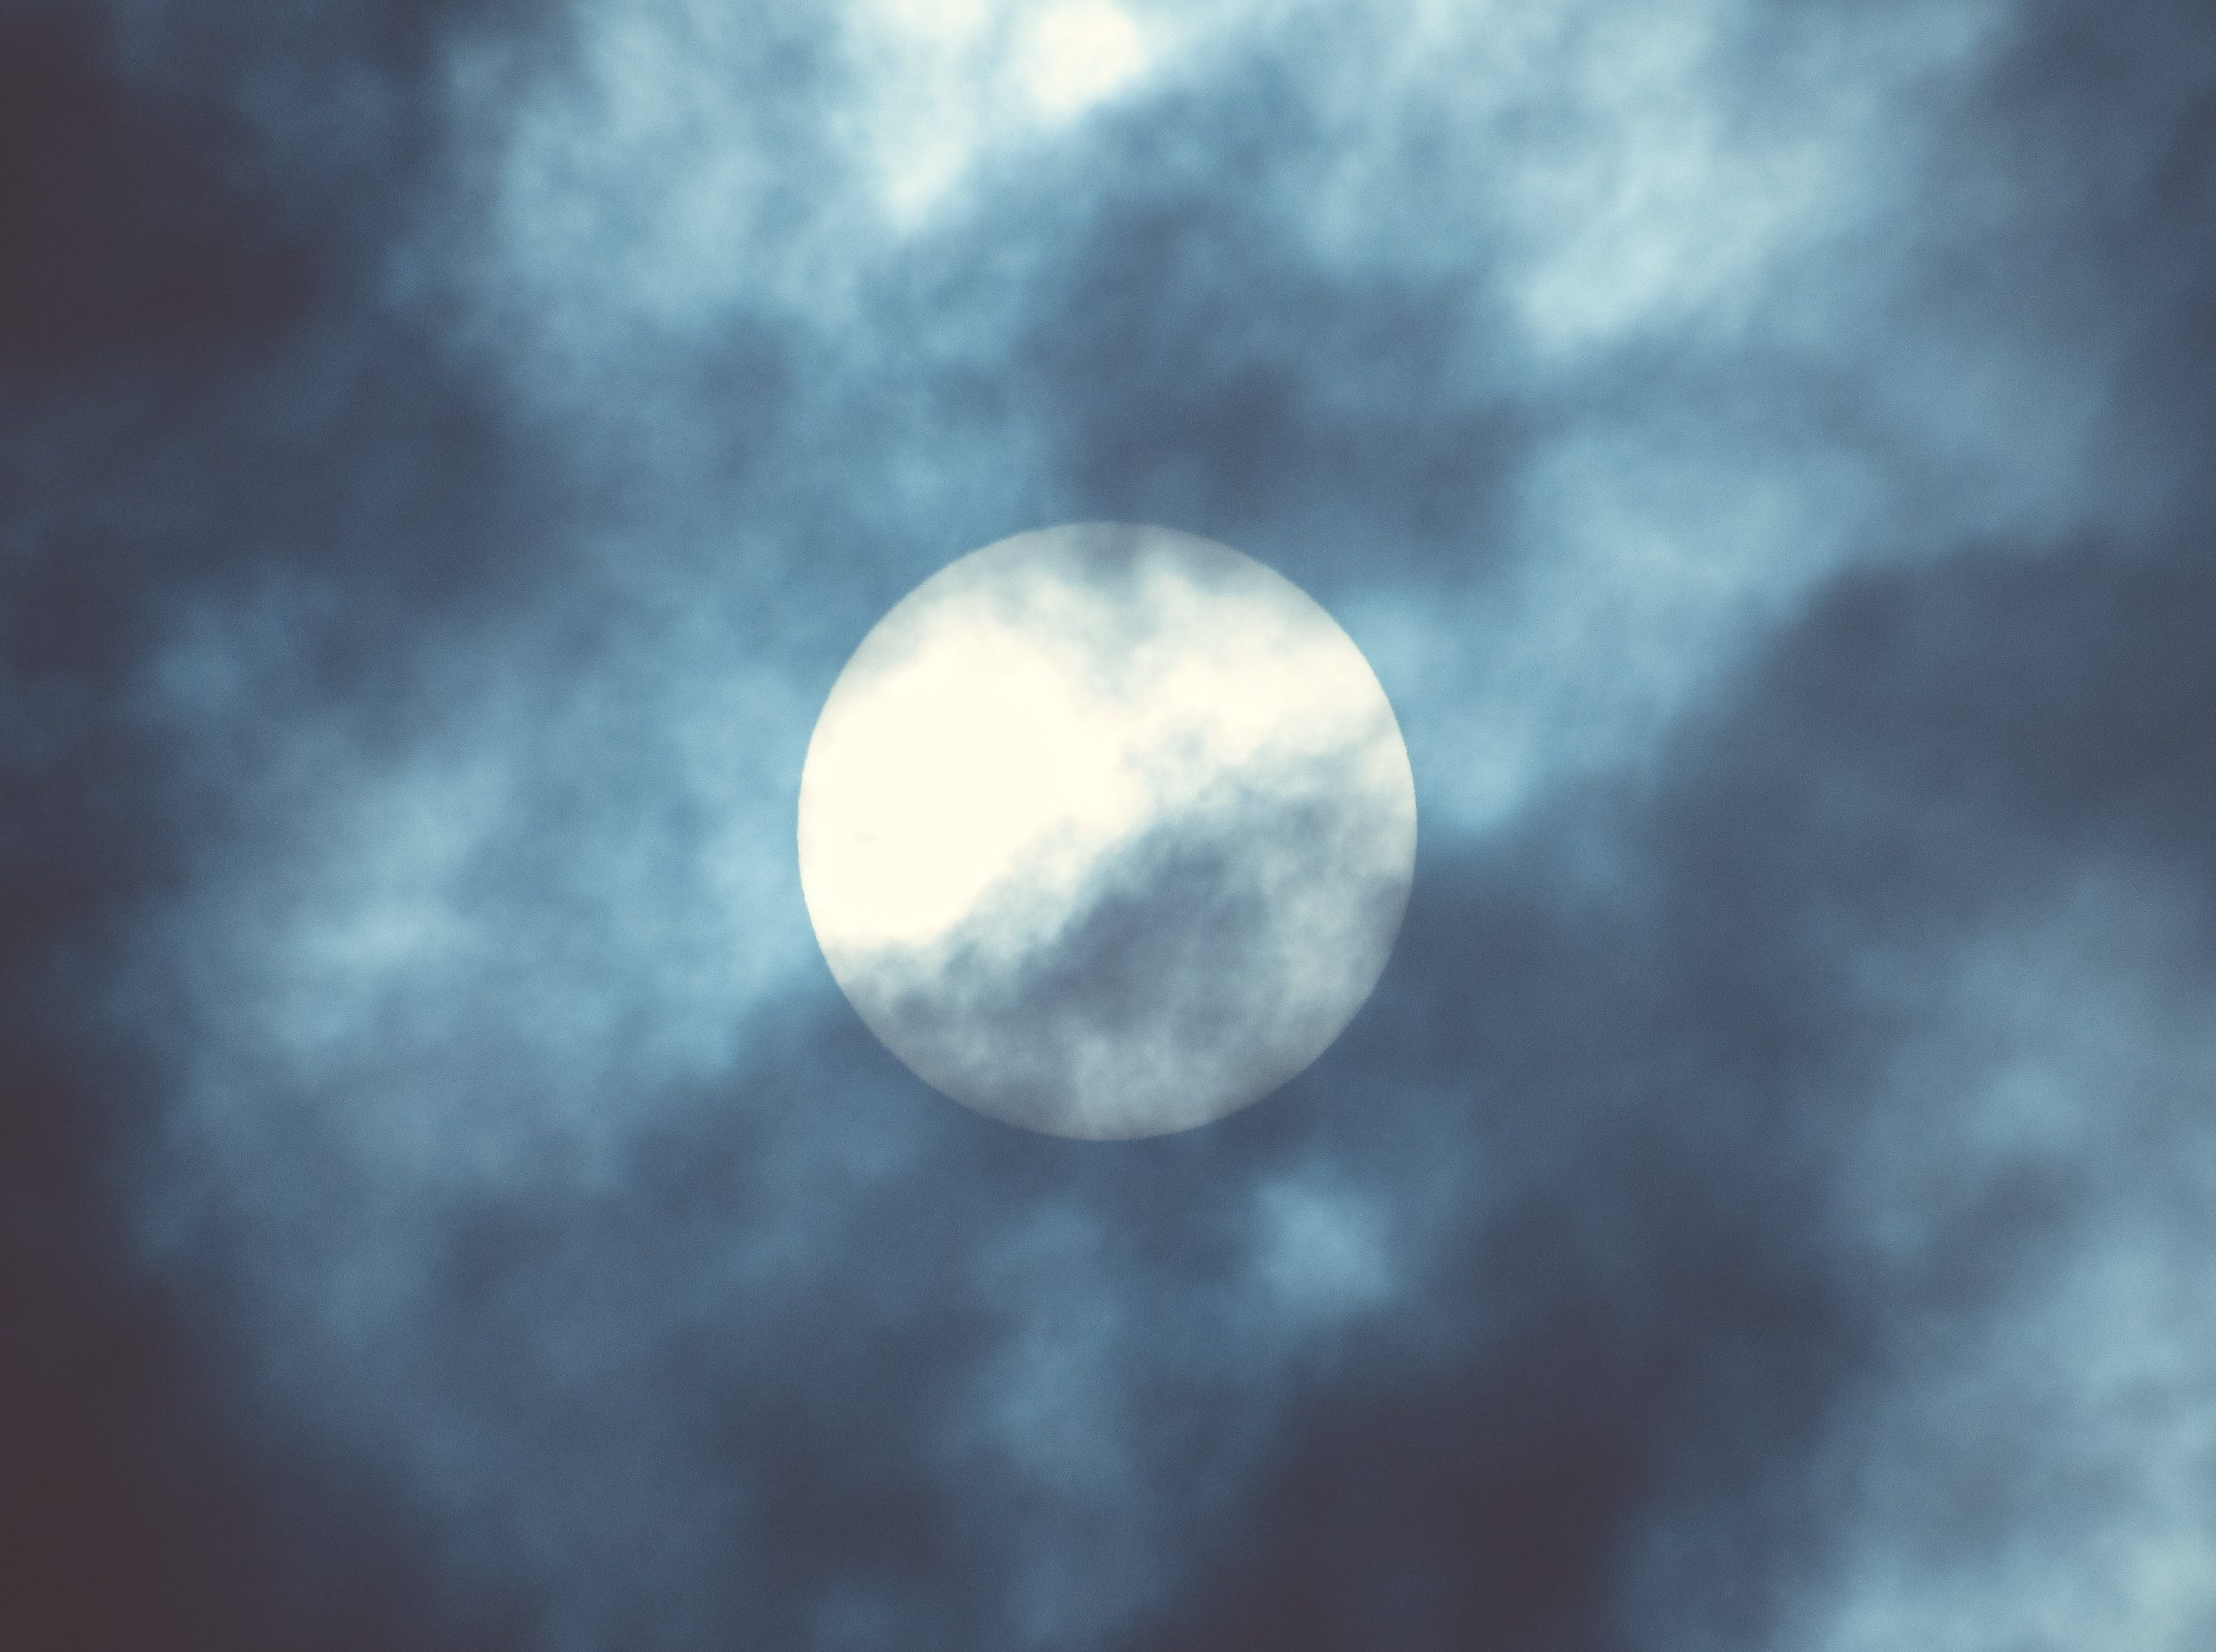 A full moon shines brightly through clouds in the sky.